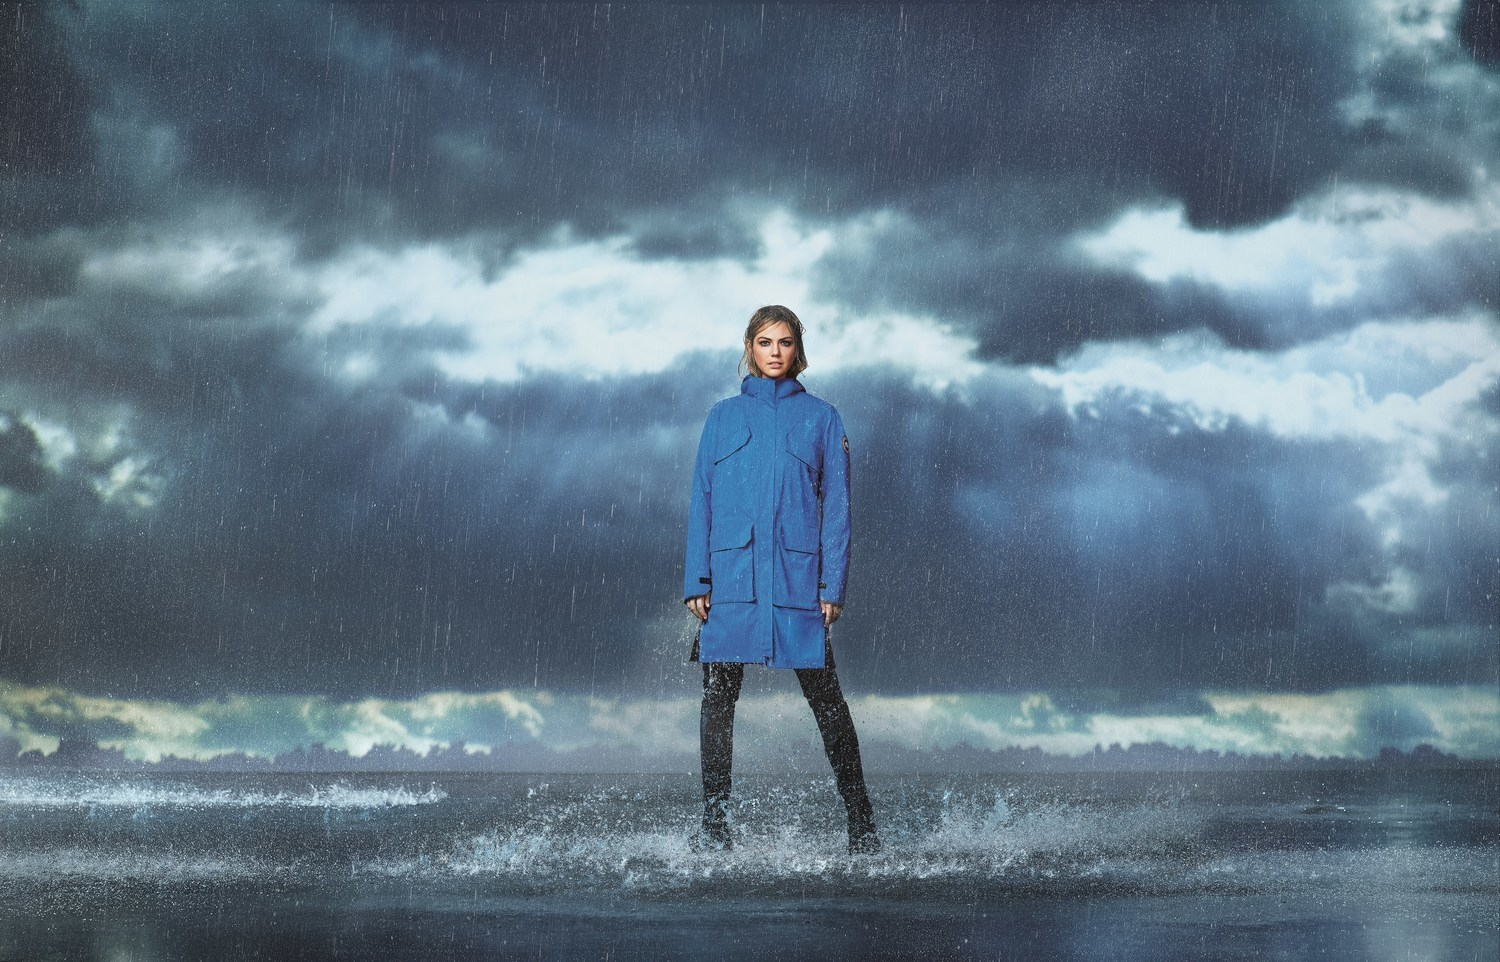 Kate Upton for Canada Goose.